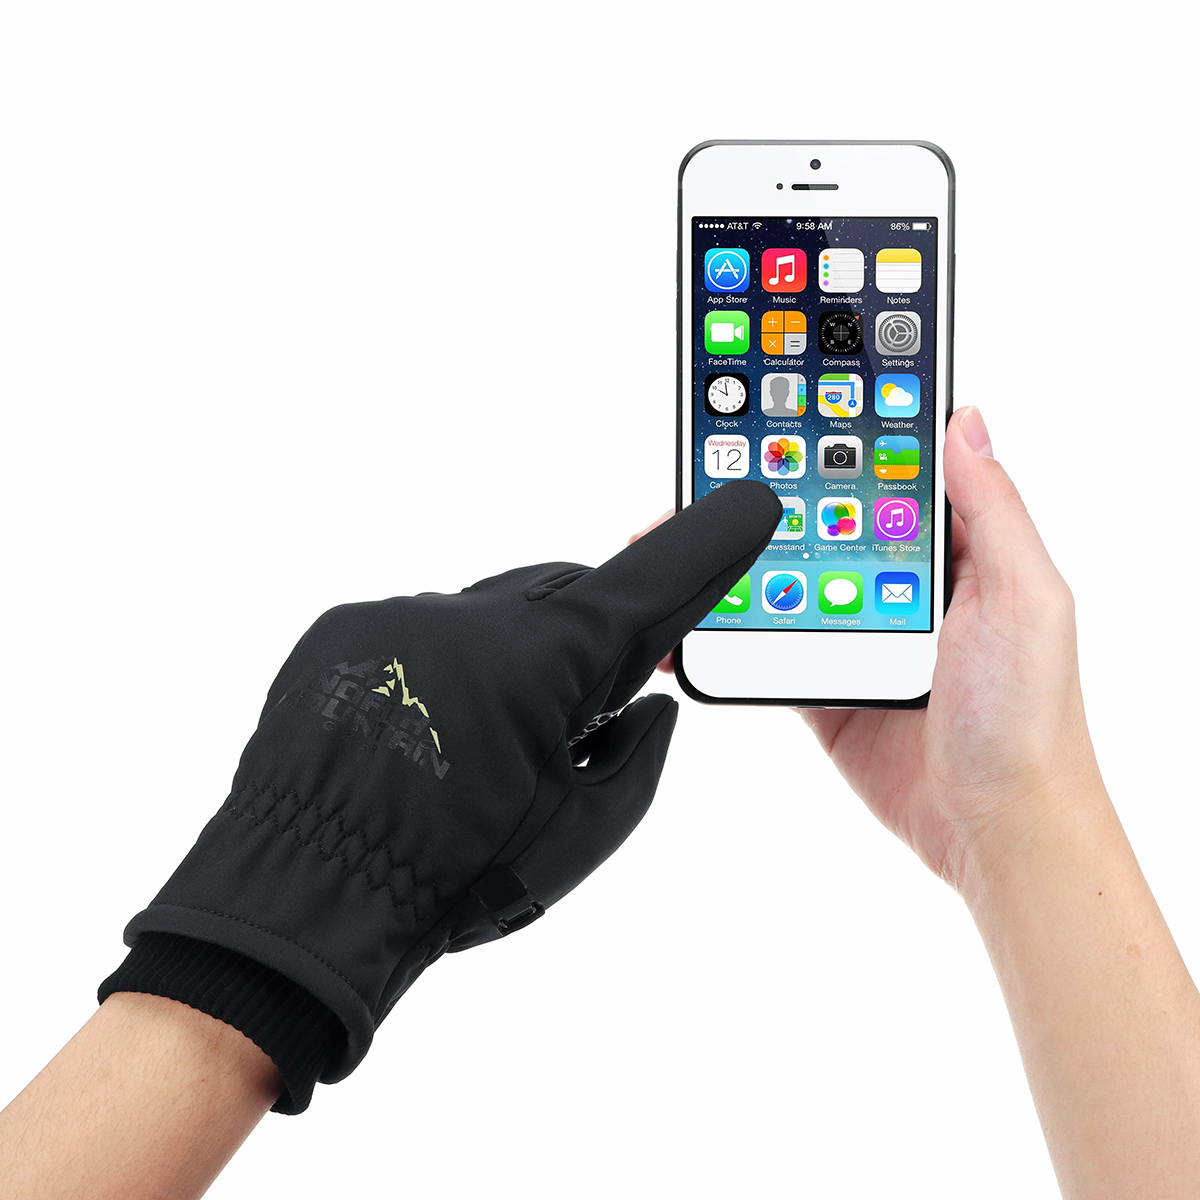 Winter Warm Touch Screen Thermal Gloves Motorcycle Ski Snow Snowboard Cycling Touchscreen Waterproof